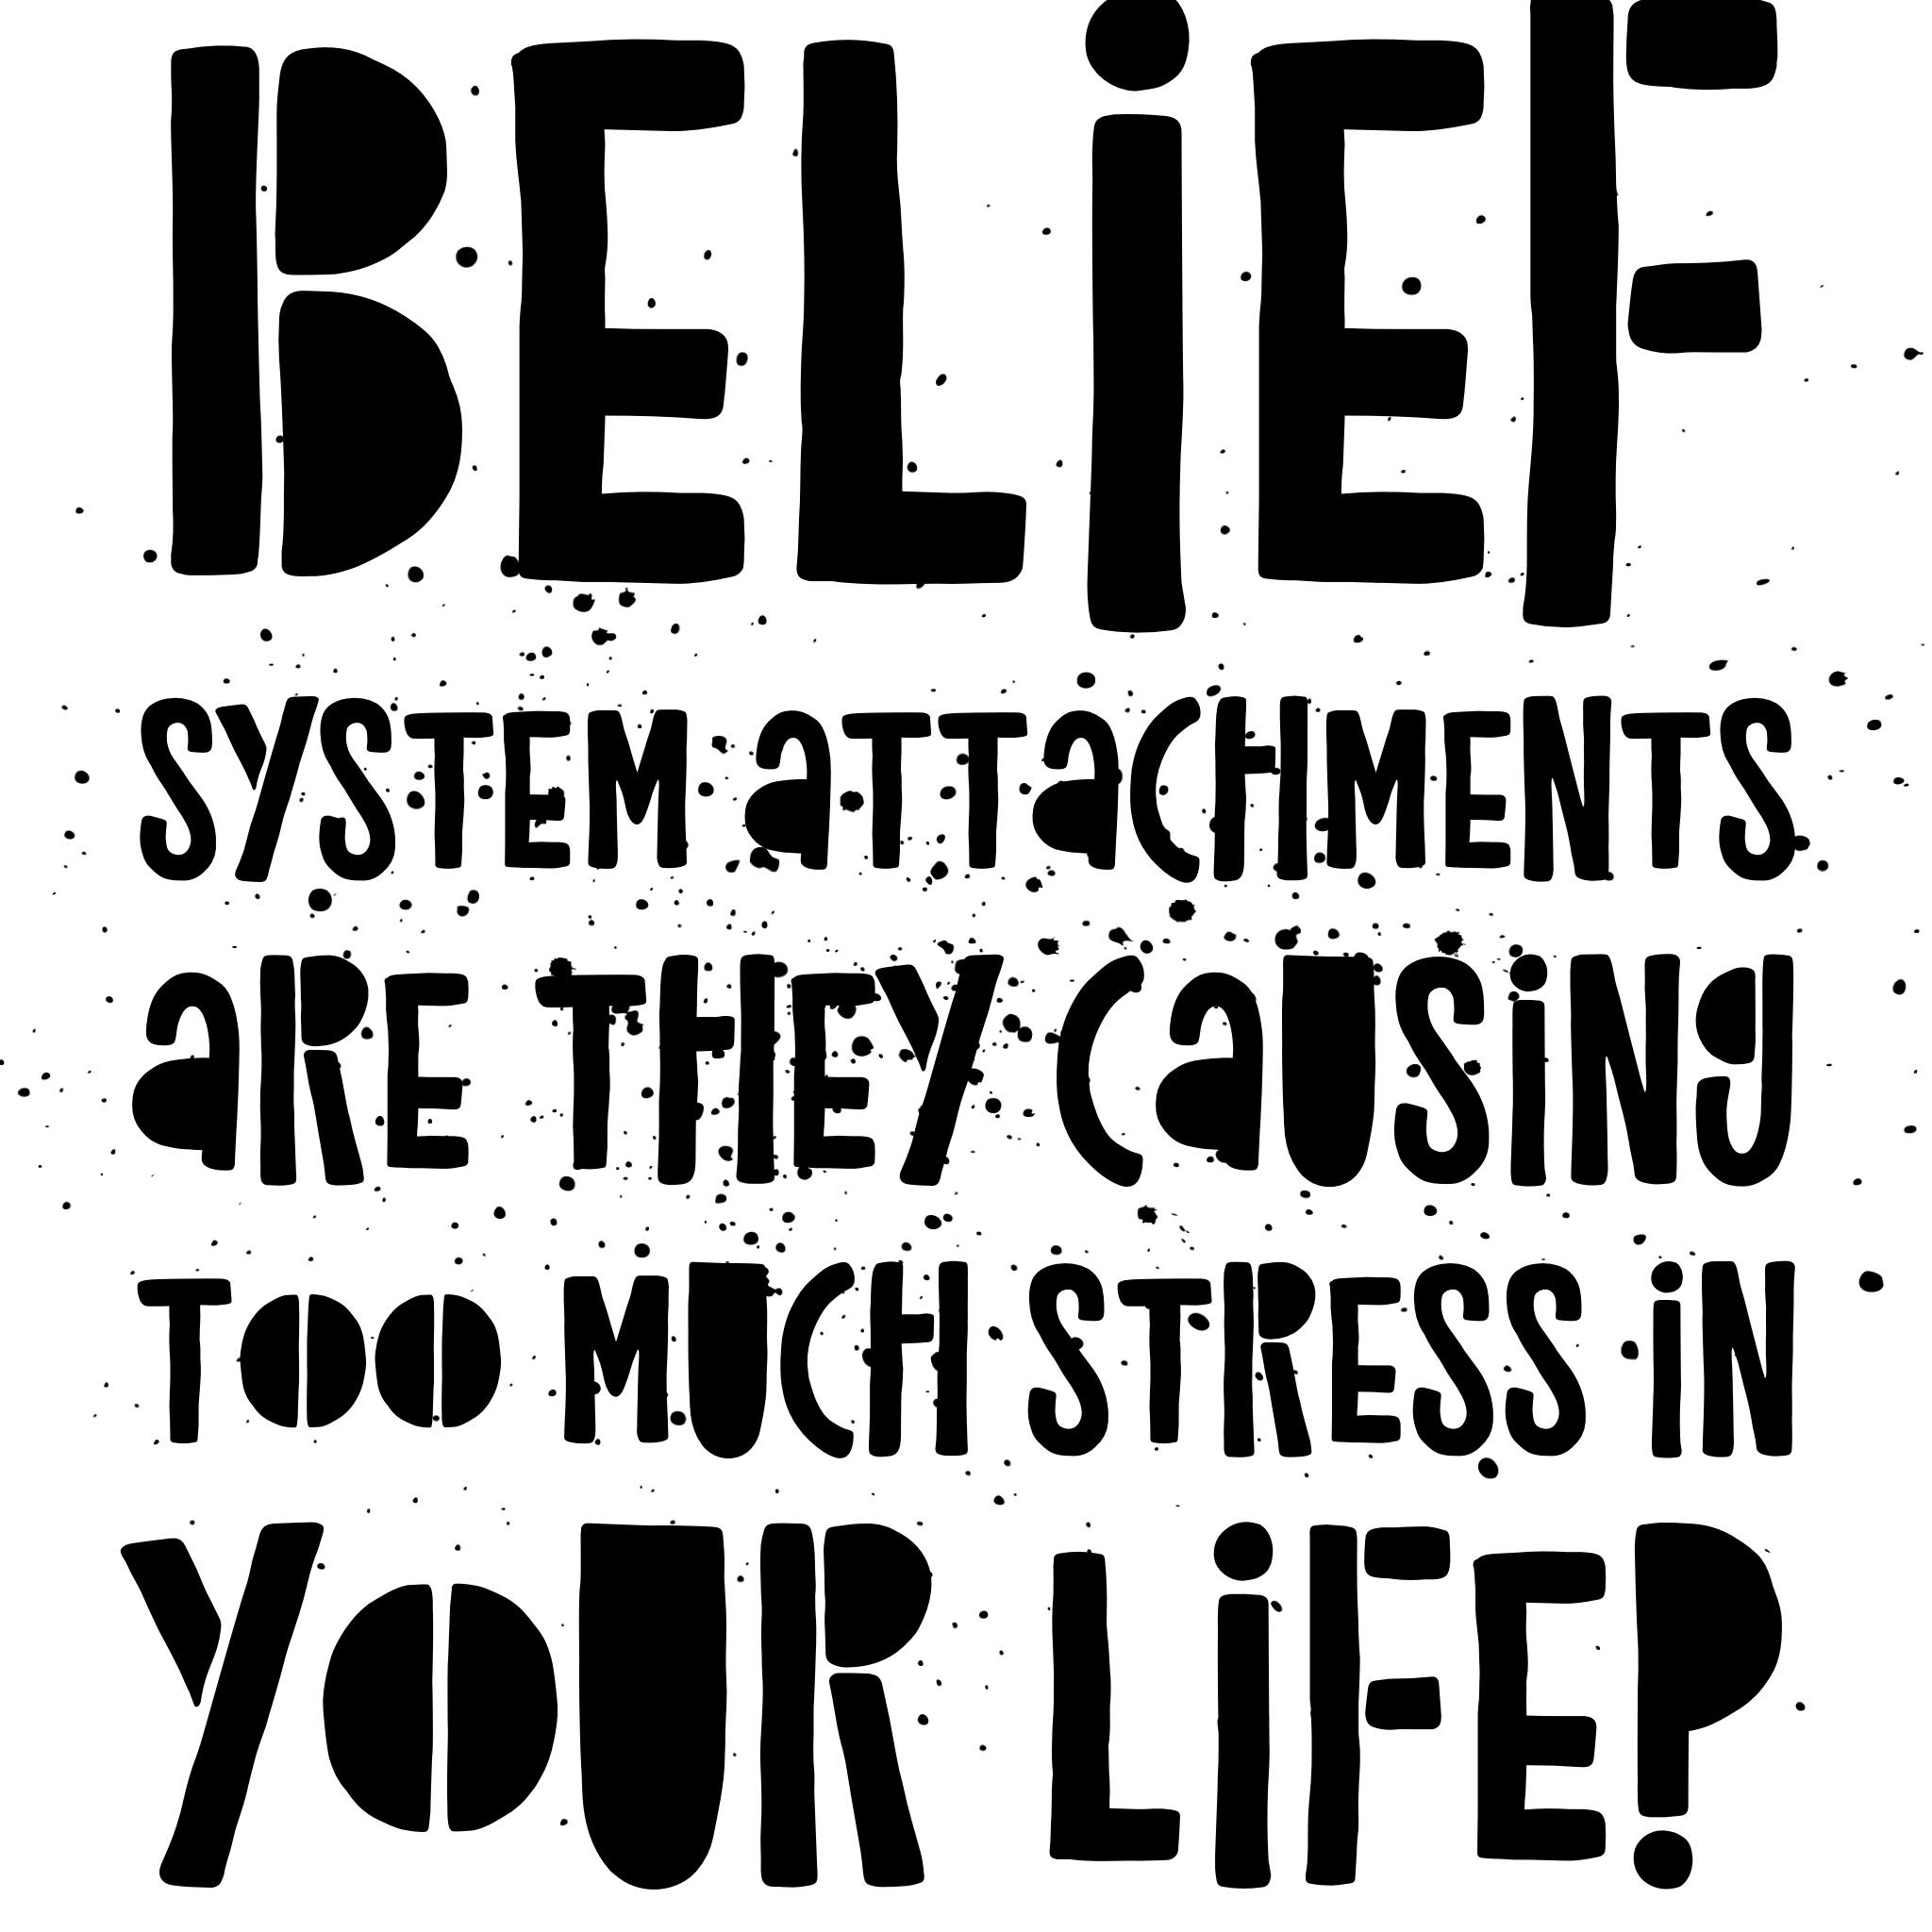 My higher self said belief systems can be very toxic and cause mental slavery bonds of attachments